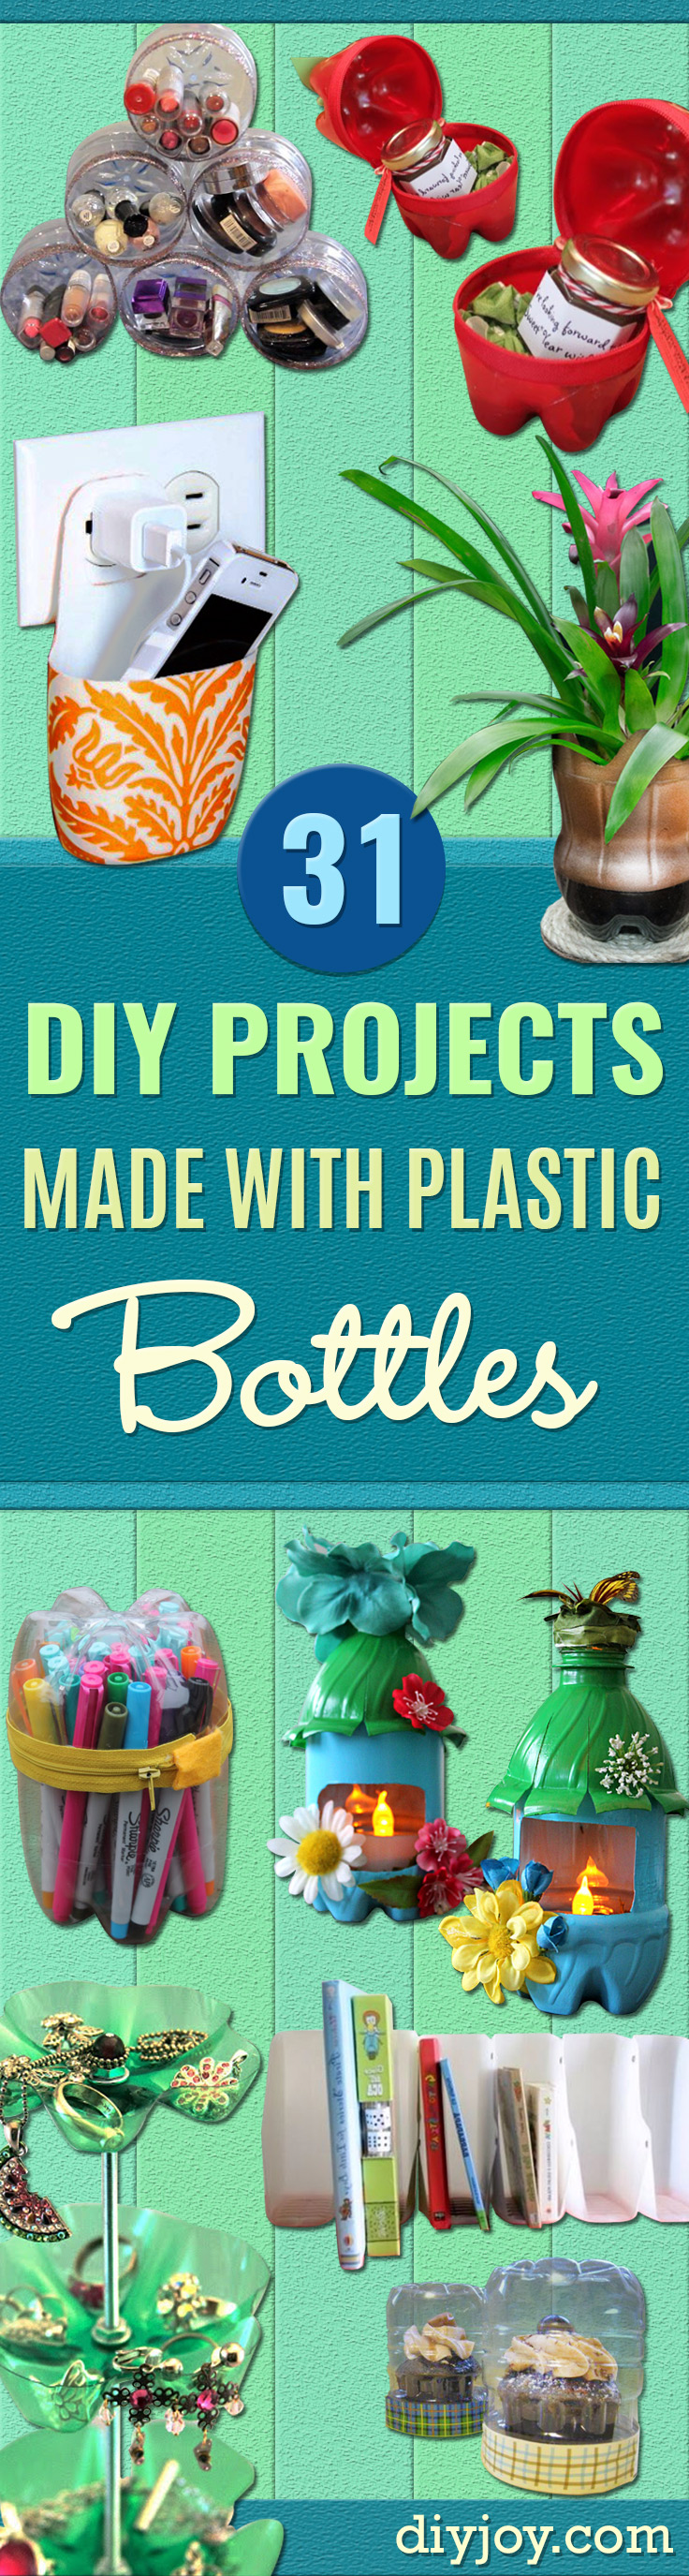 Cool DIY Projects Made With Plastic Bottles - Best Easy Crafts and DIY Ideas Made With A Recycled Plastic Bottle - Jewlery, Home Decor, Planters, Craft Project Tutorials - Cheap Ways to Decorate and Creative DIY Gifts for Christmas Holidays - Fun Projects for Adults, Teens and Kids